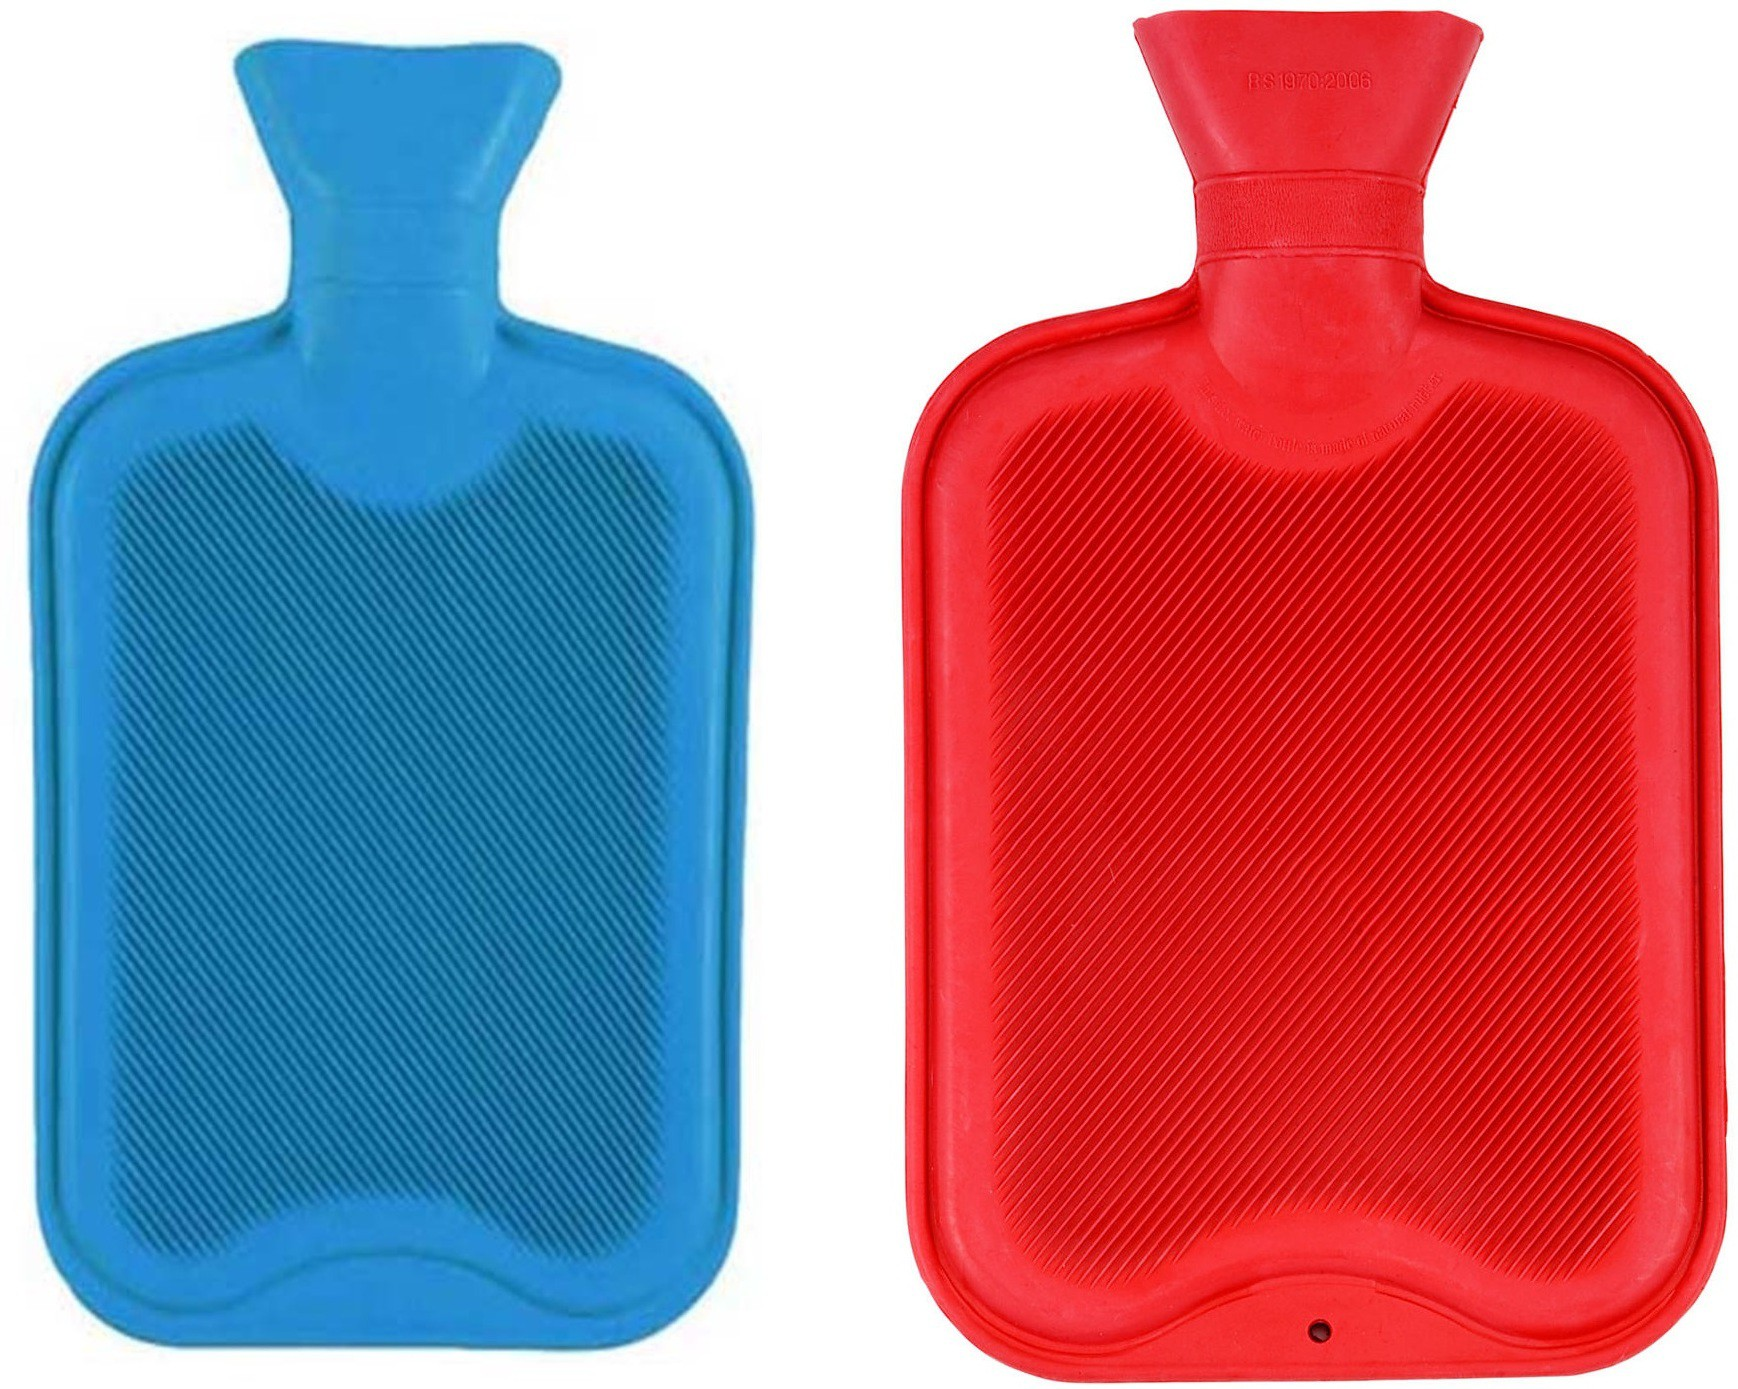 Ramco Combo Comfort Specials Non-electrical 3 L Hot Water Bag(Blue, Red)